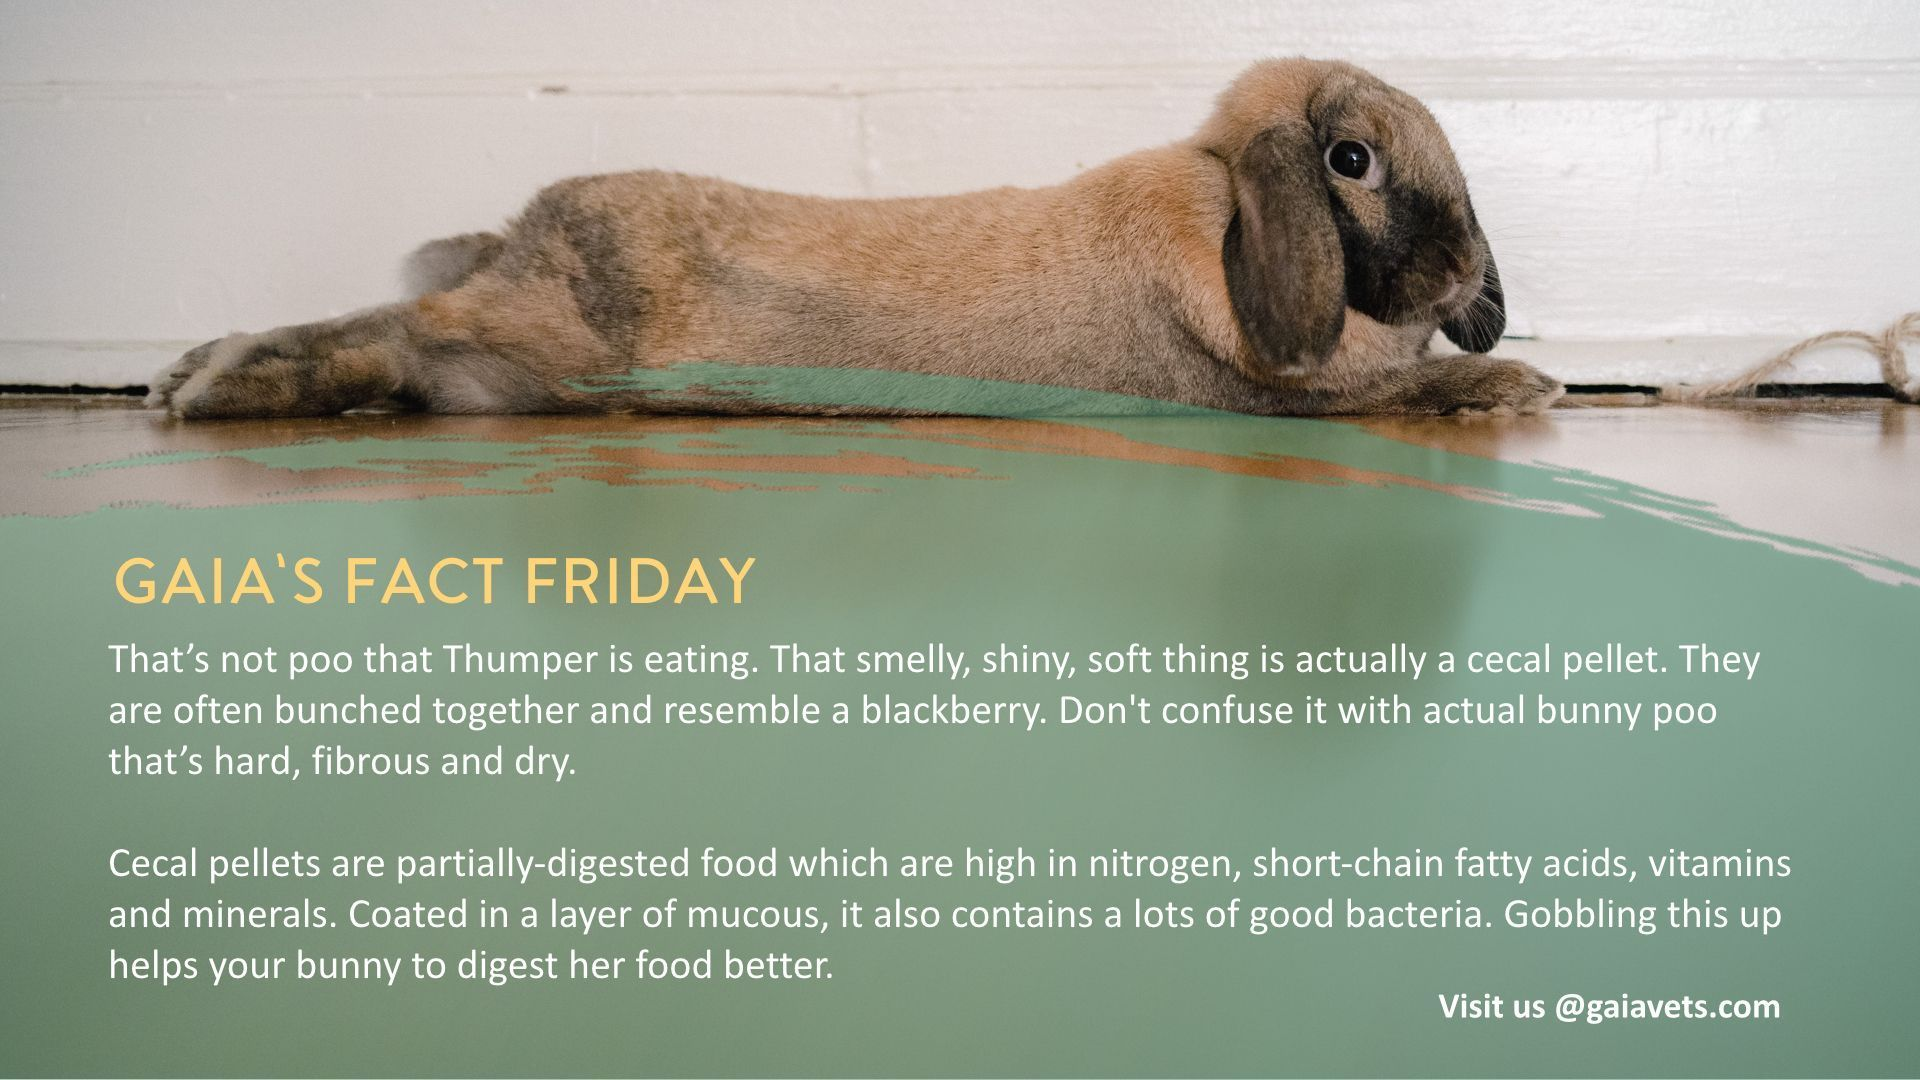 Here S A Bunny Fun Fact For The Easter Weekend That S Not